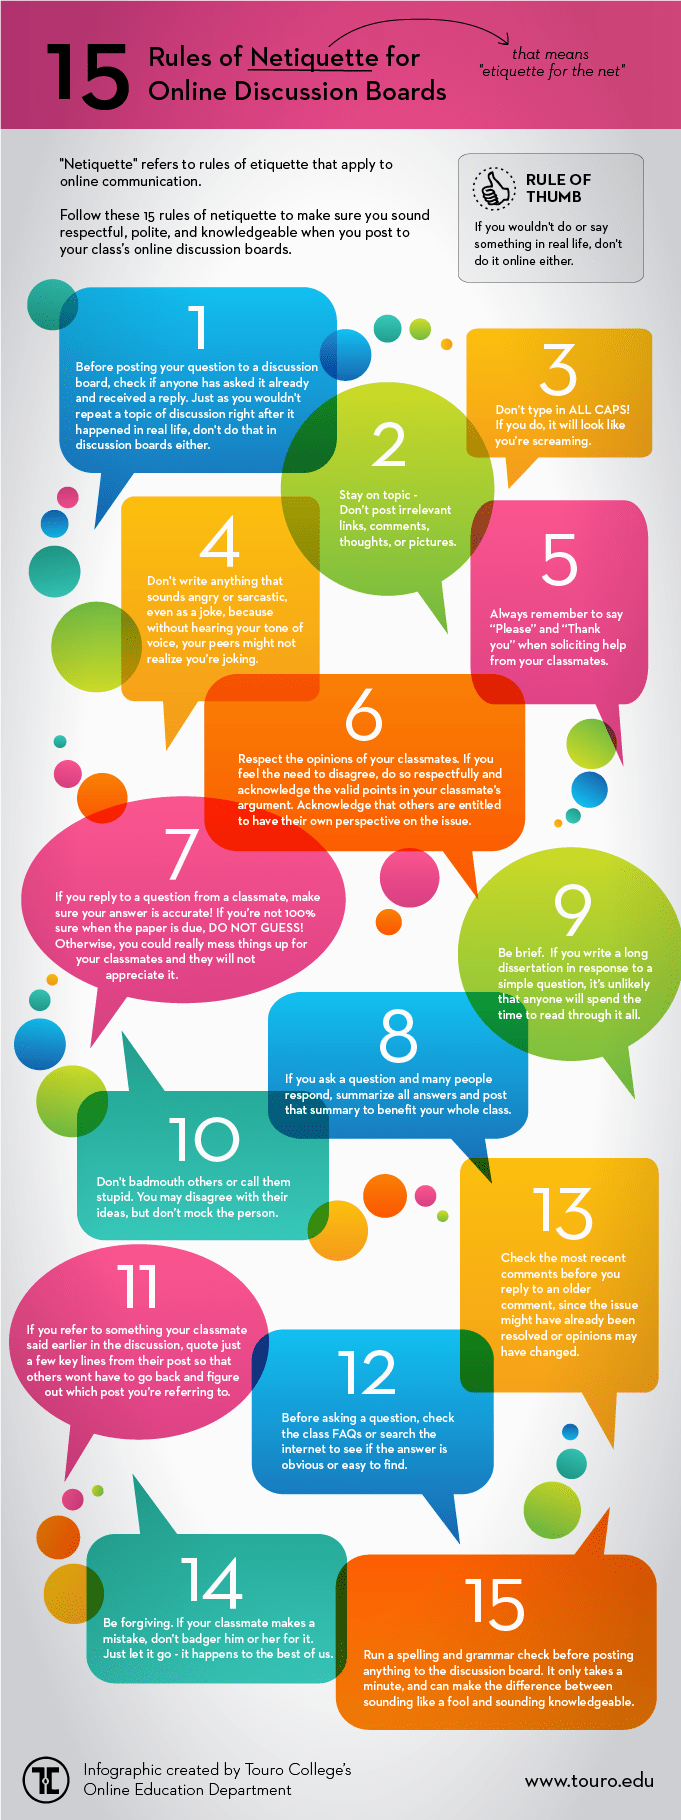 Netiquette-Online-Discussion-Boards-infographic.png